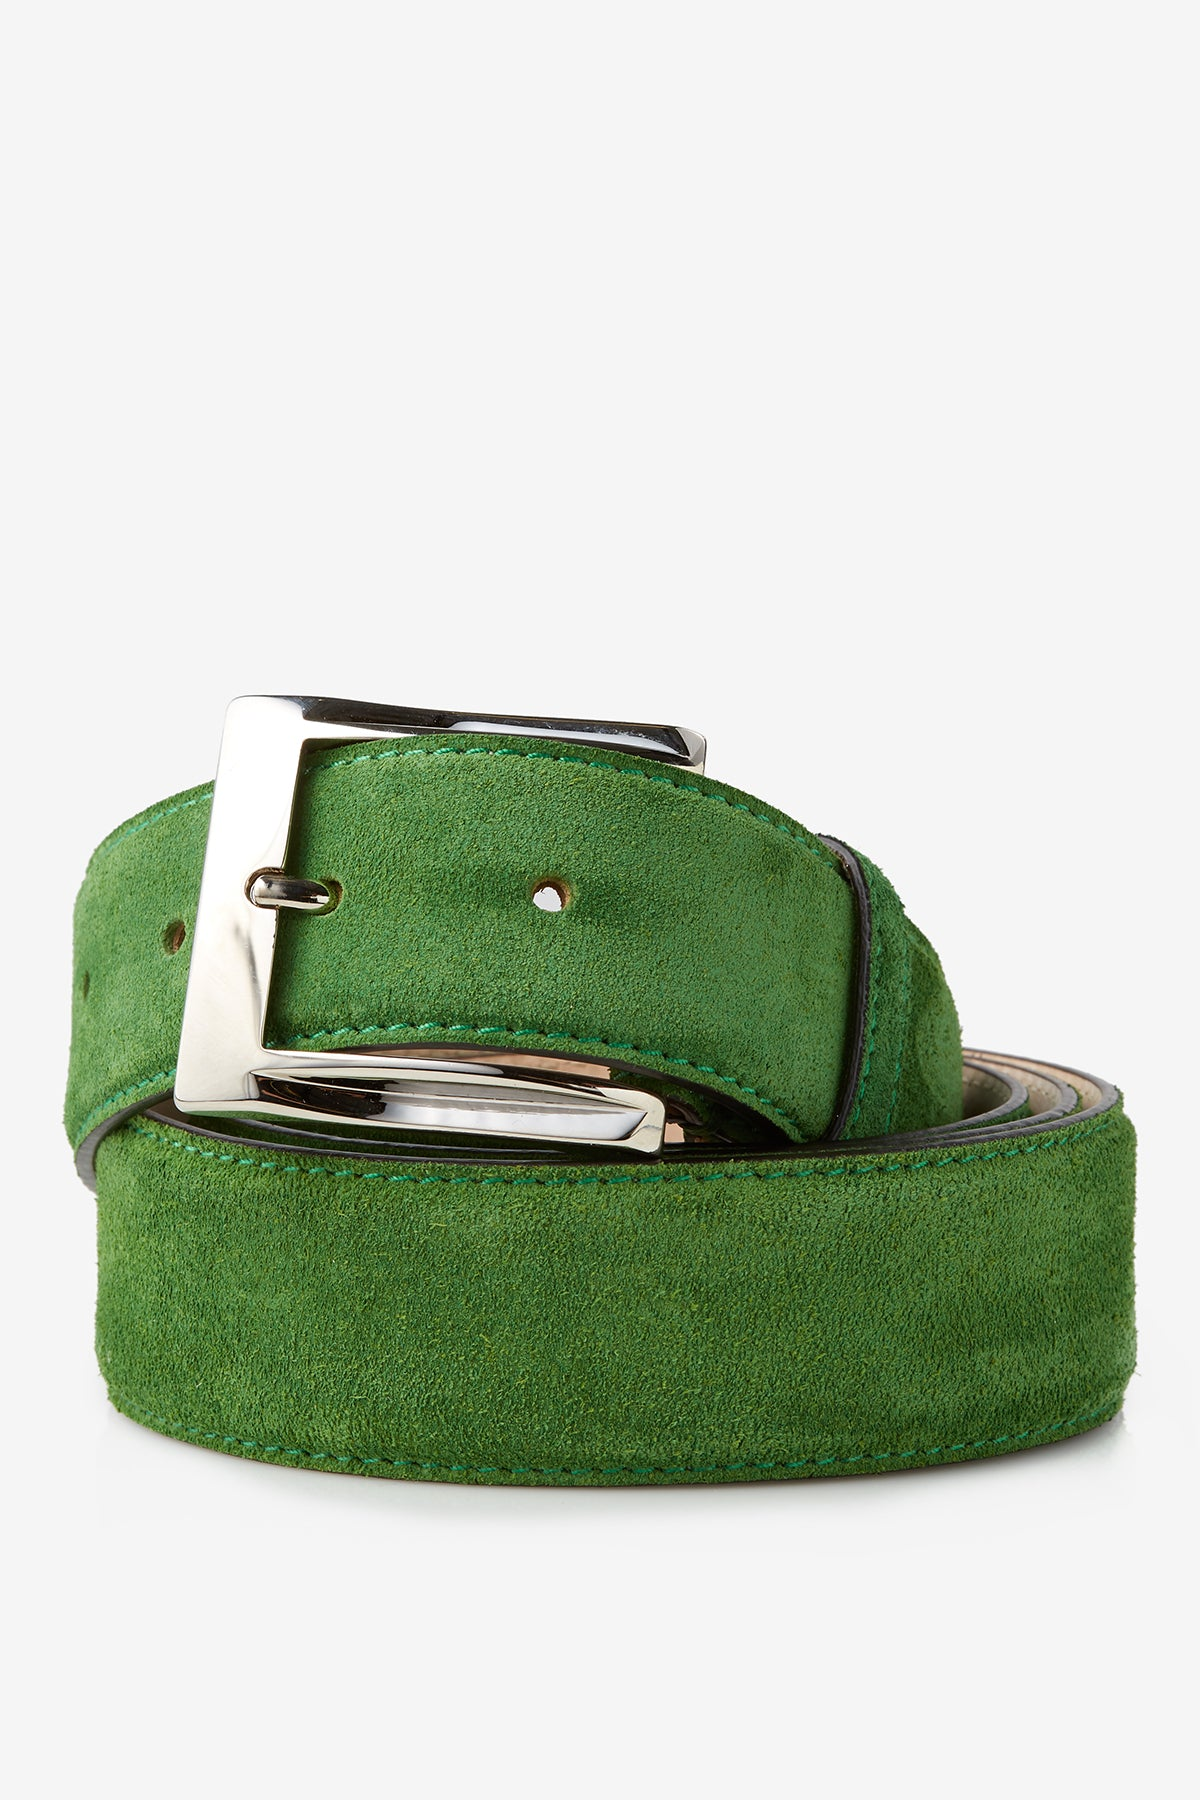 David August Genuine Velour Belt in Sport Green Di Bianco